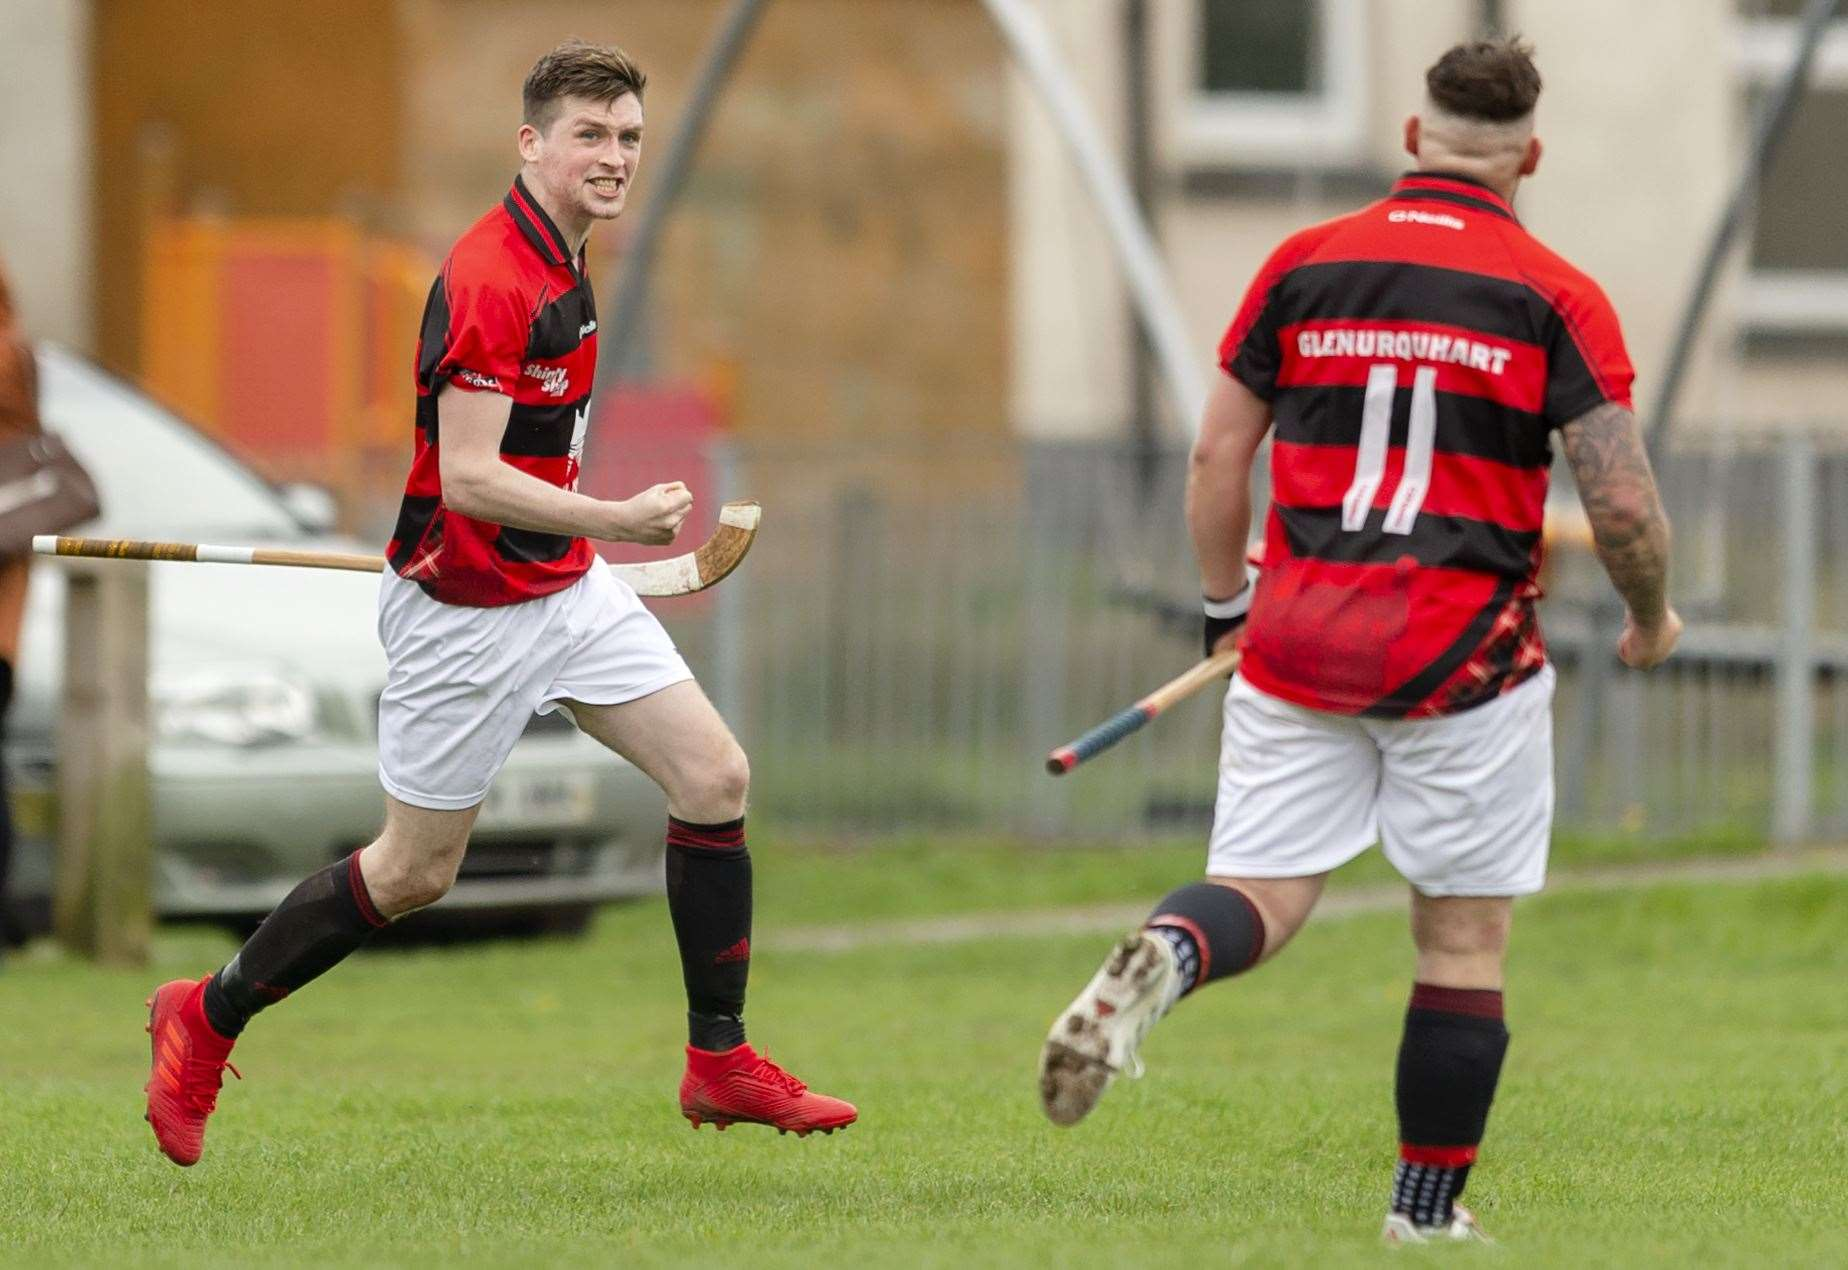 Scoreline undecided in shinty hurling match